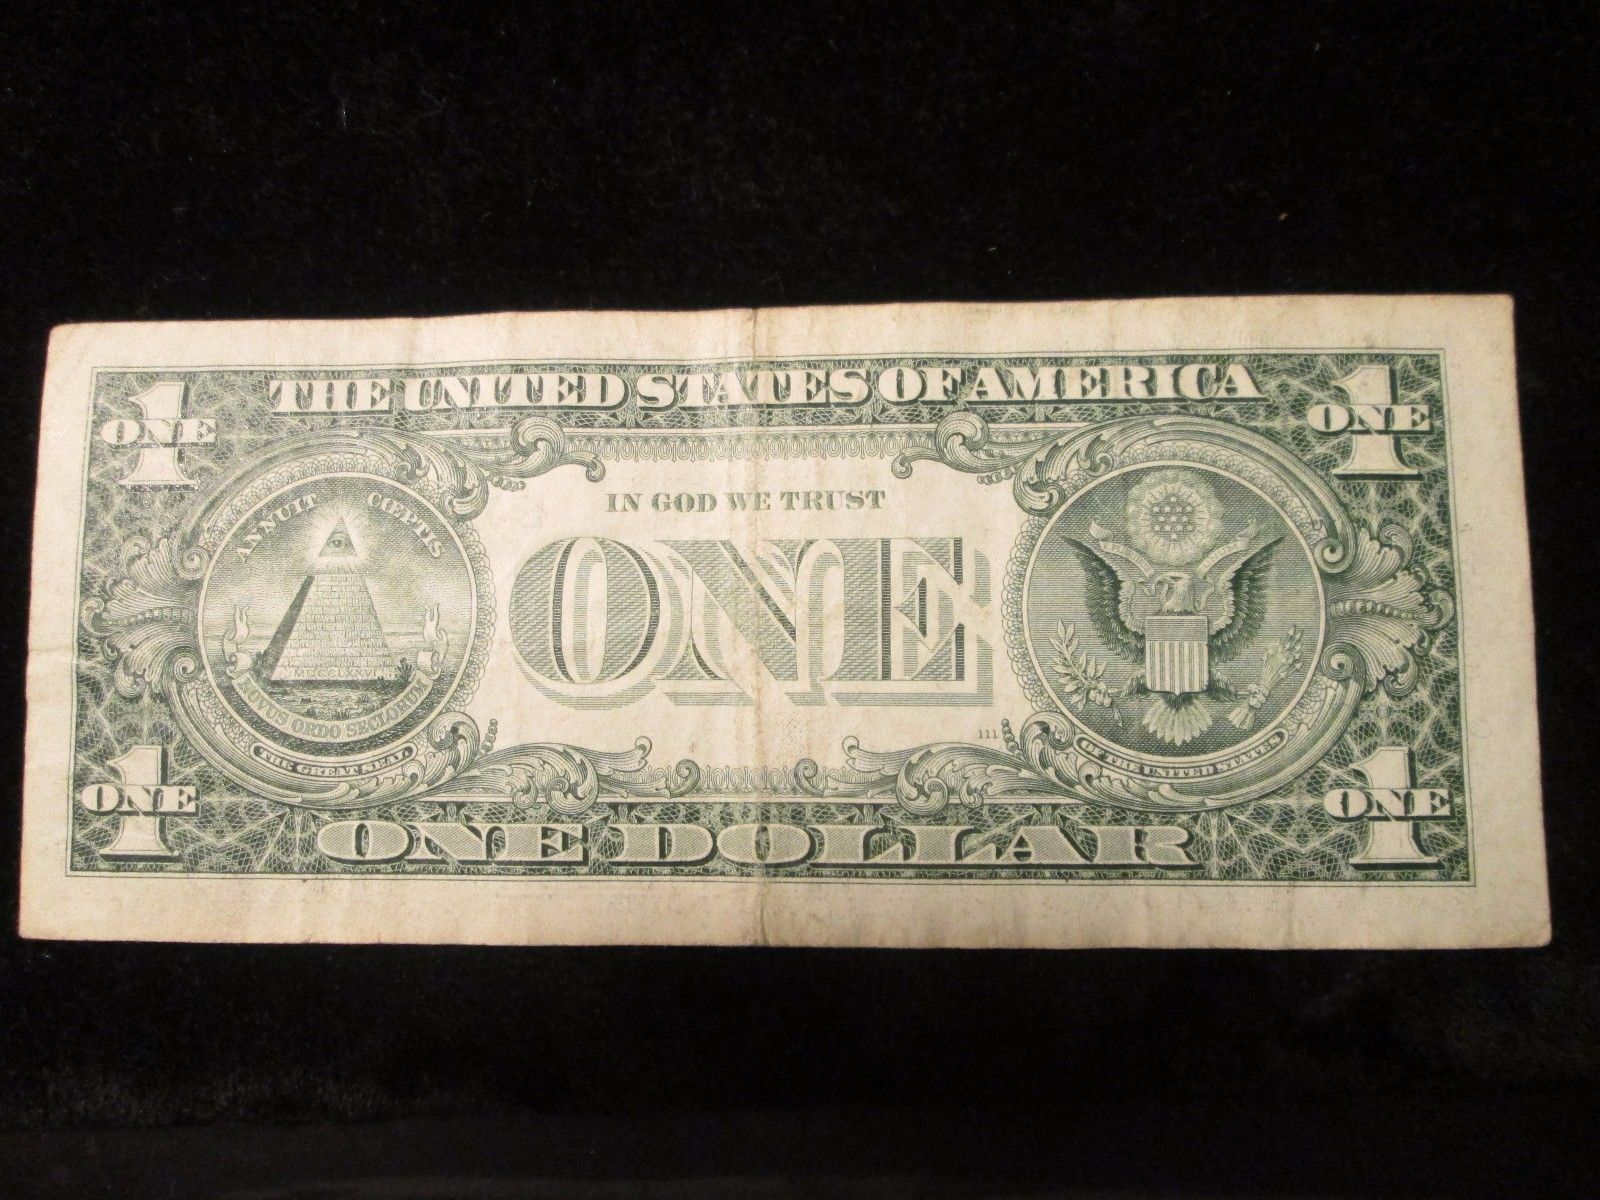 2003 Fed Reserve Bank of Richmond VA STAR Note Seal & Serial Off left with 3 9's